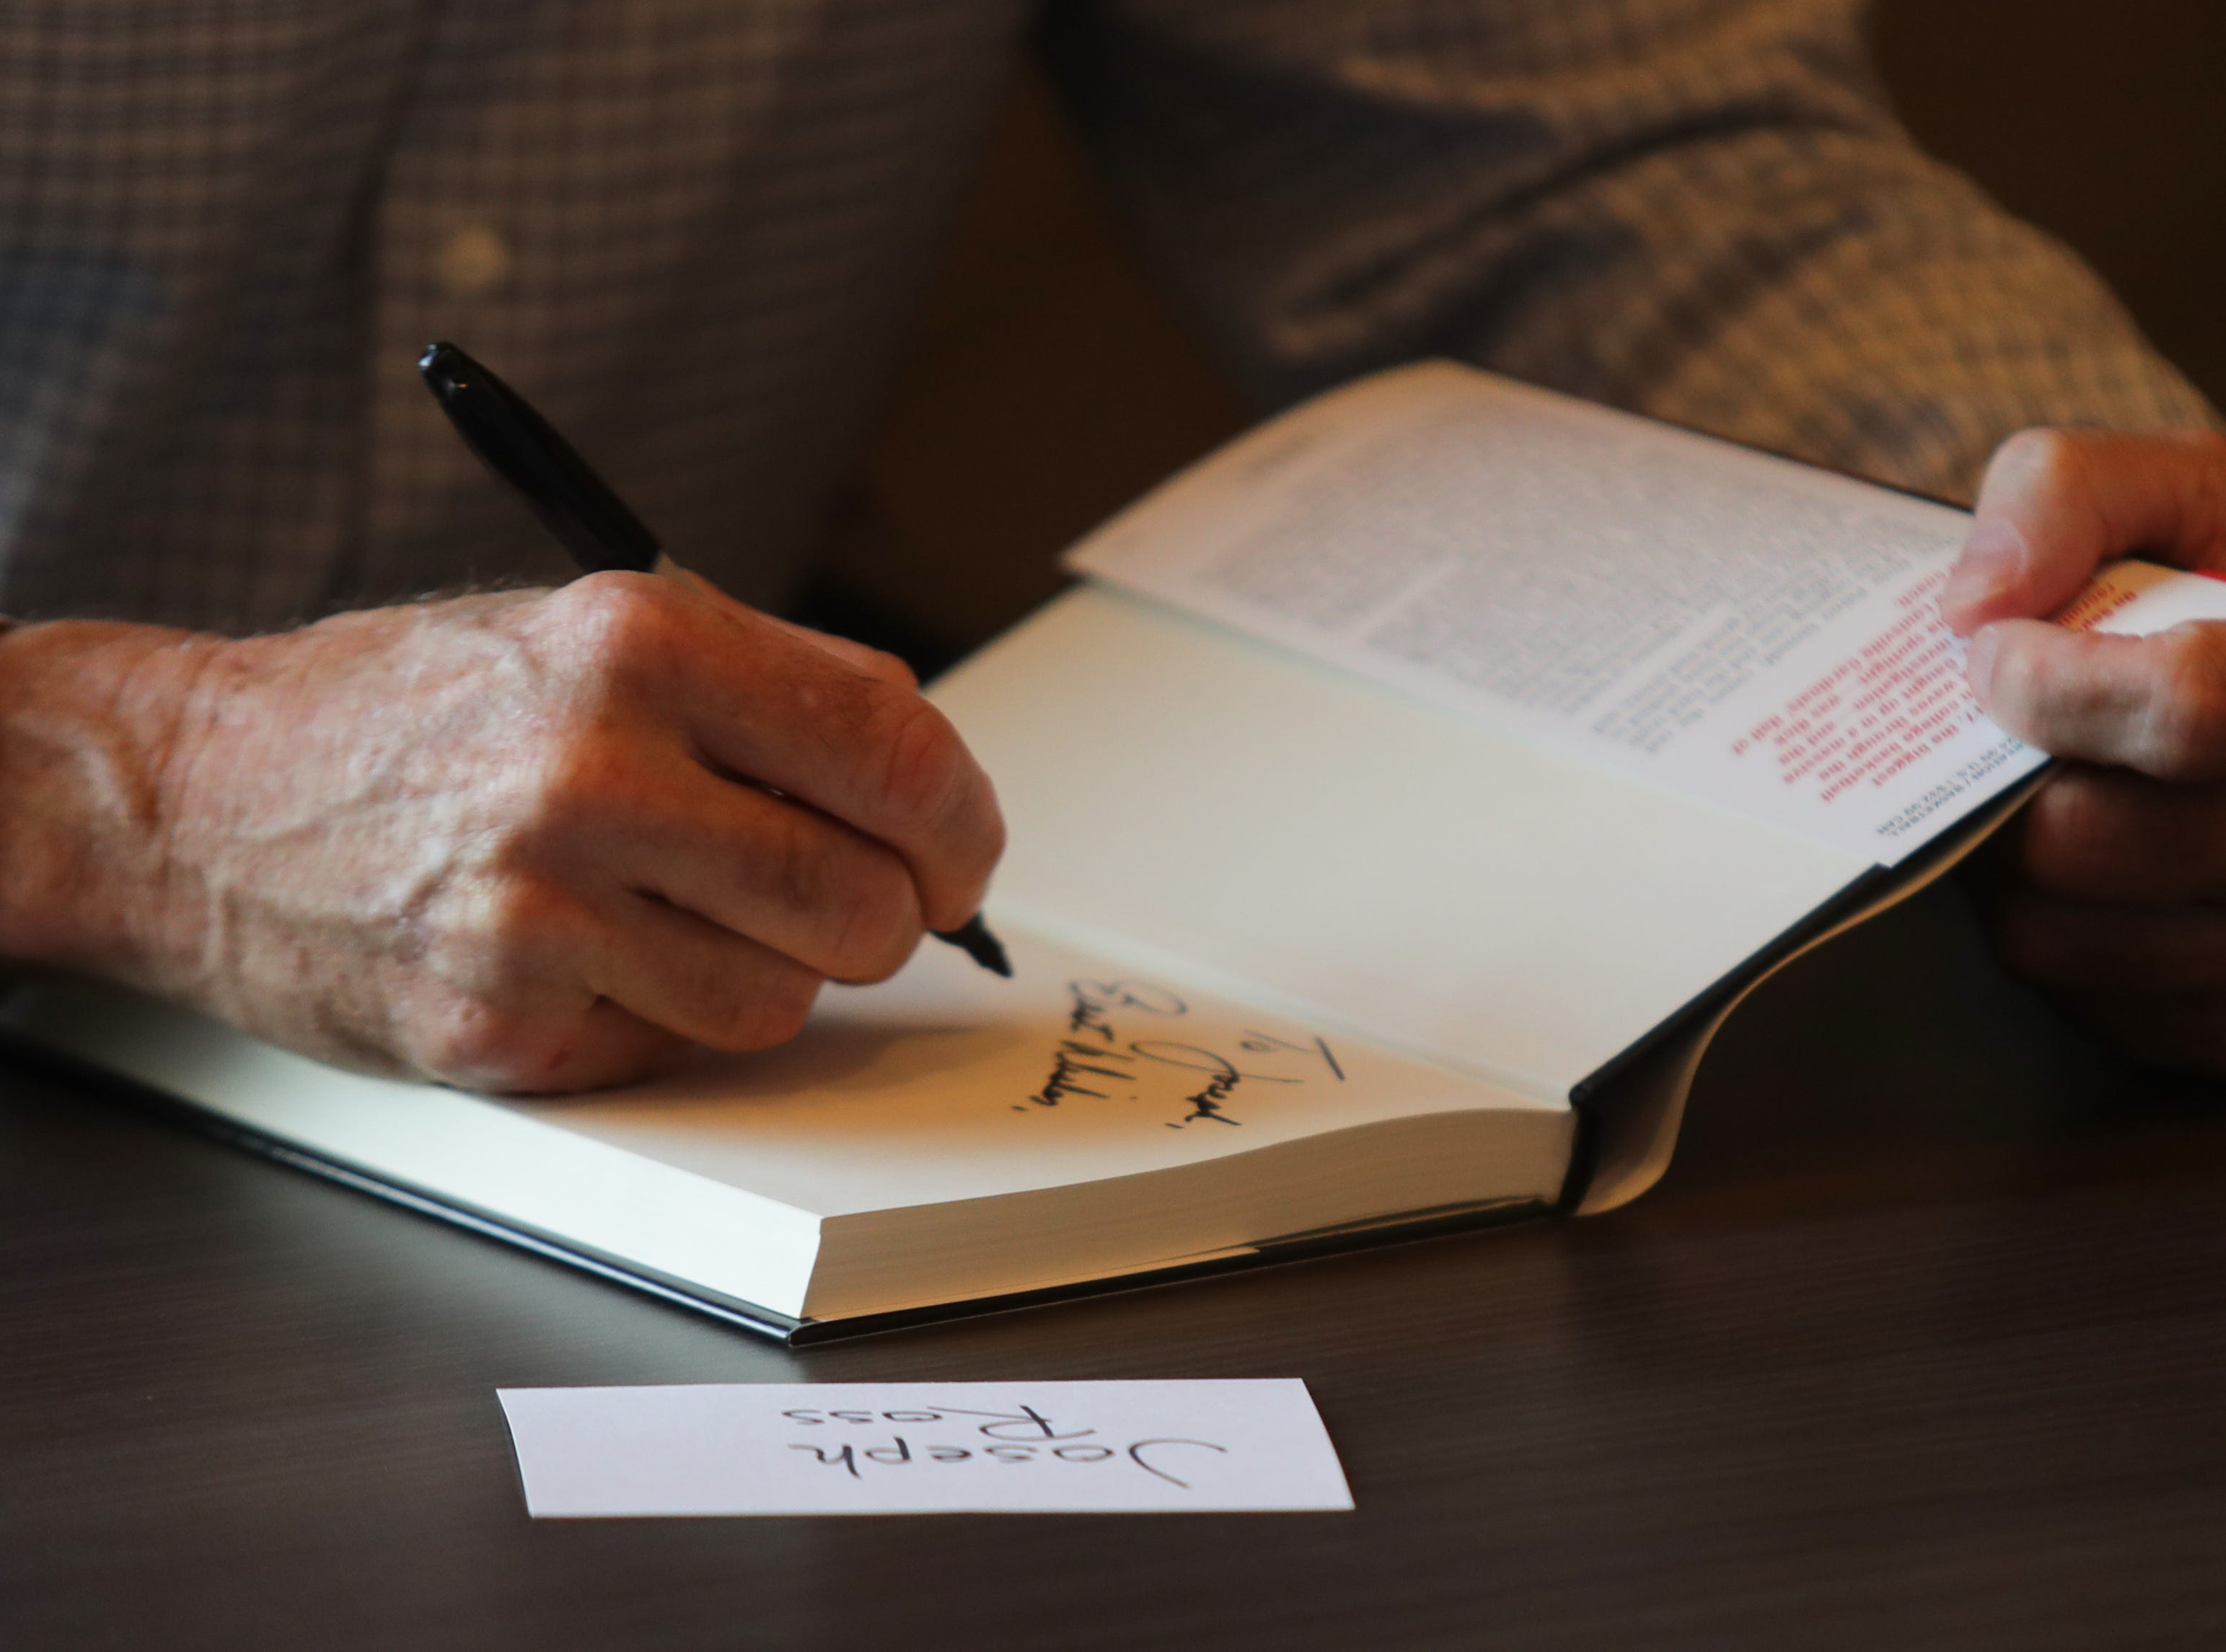 Rick Pitino signs his book at the Omni Hotel on Friday afternoon in Louisville, Kentucky.Sept. 14, 2018